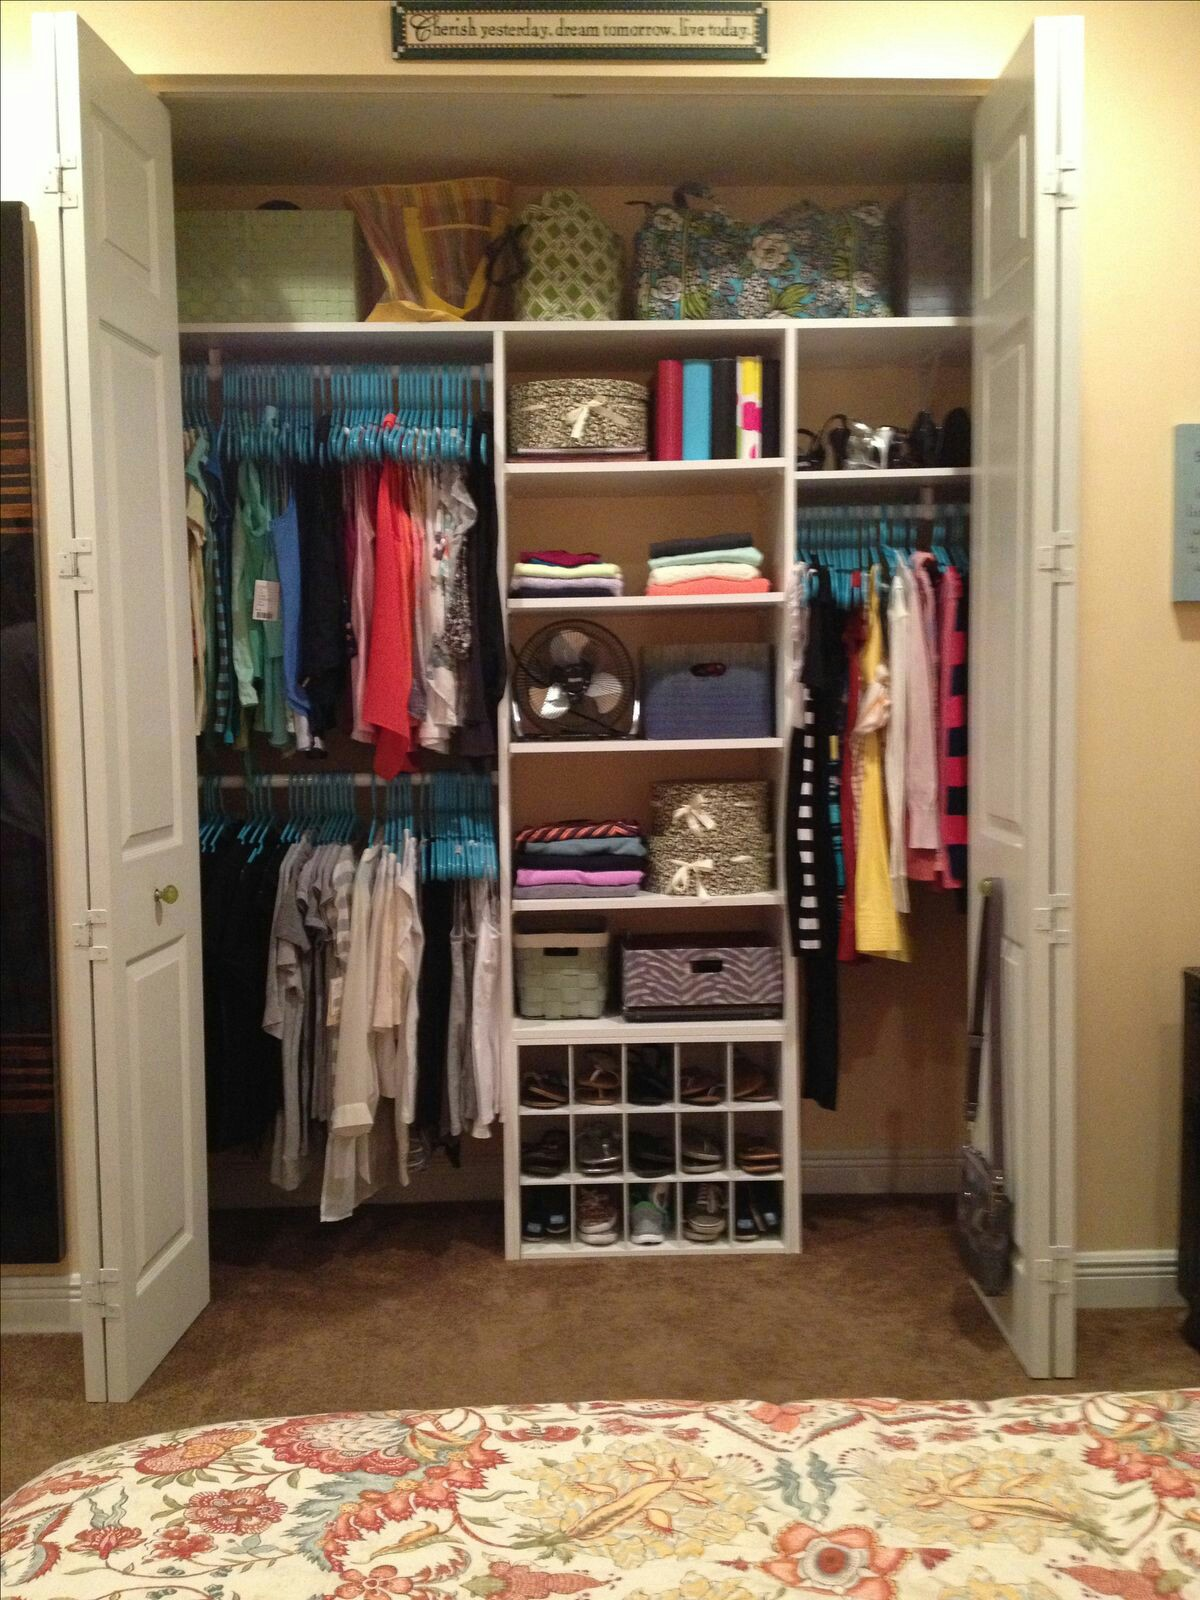 50 Images Of Genius Ideas To Organize Your Closet